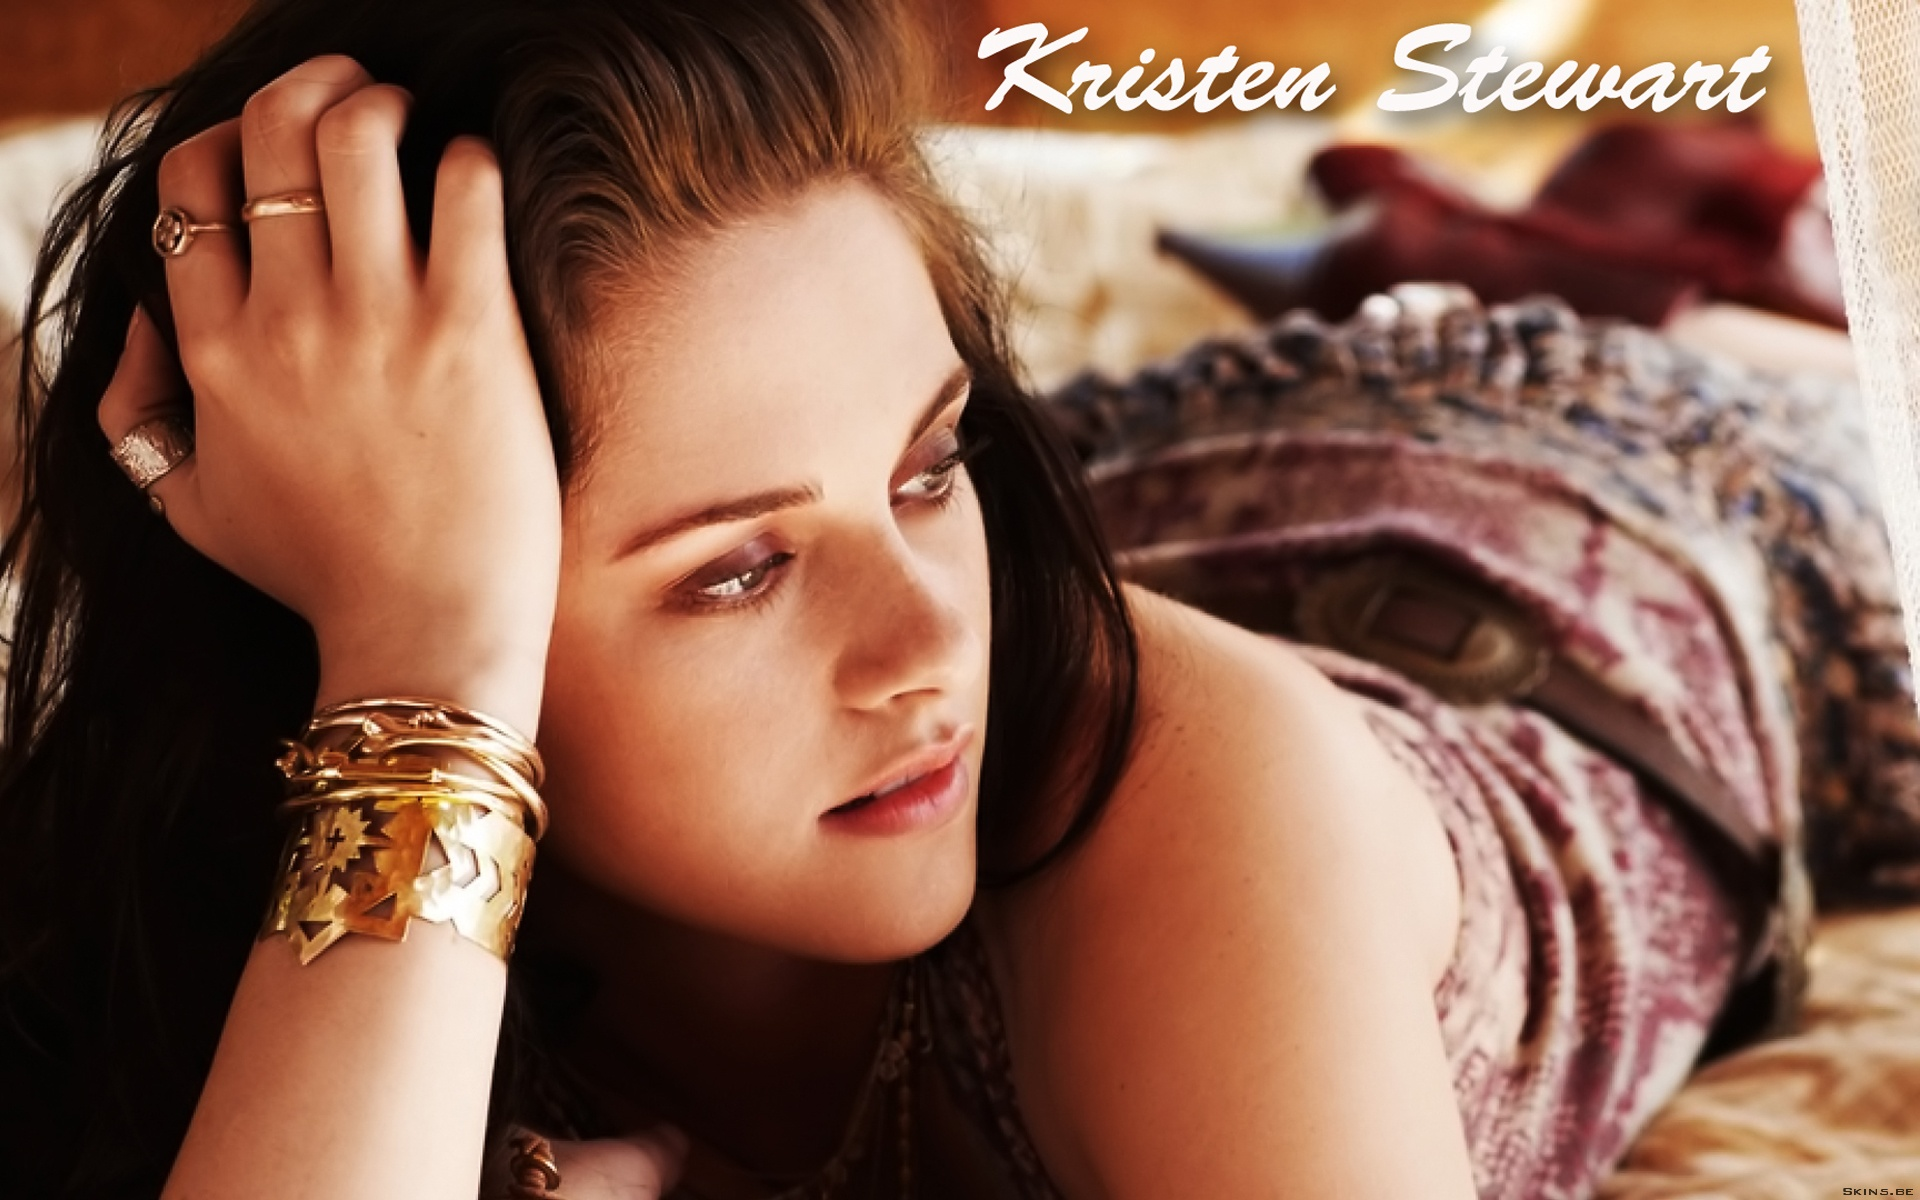 kristen stewart wallpapers, pictures, images